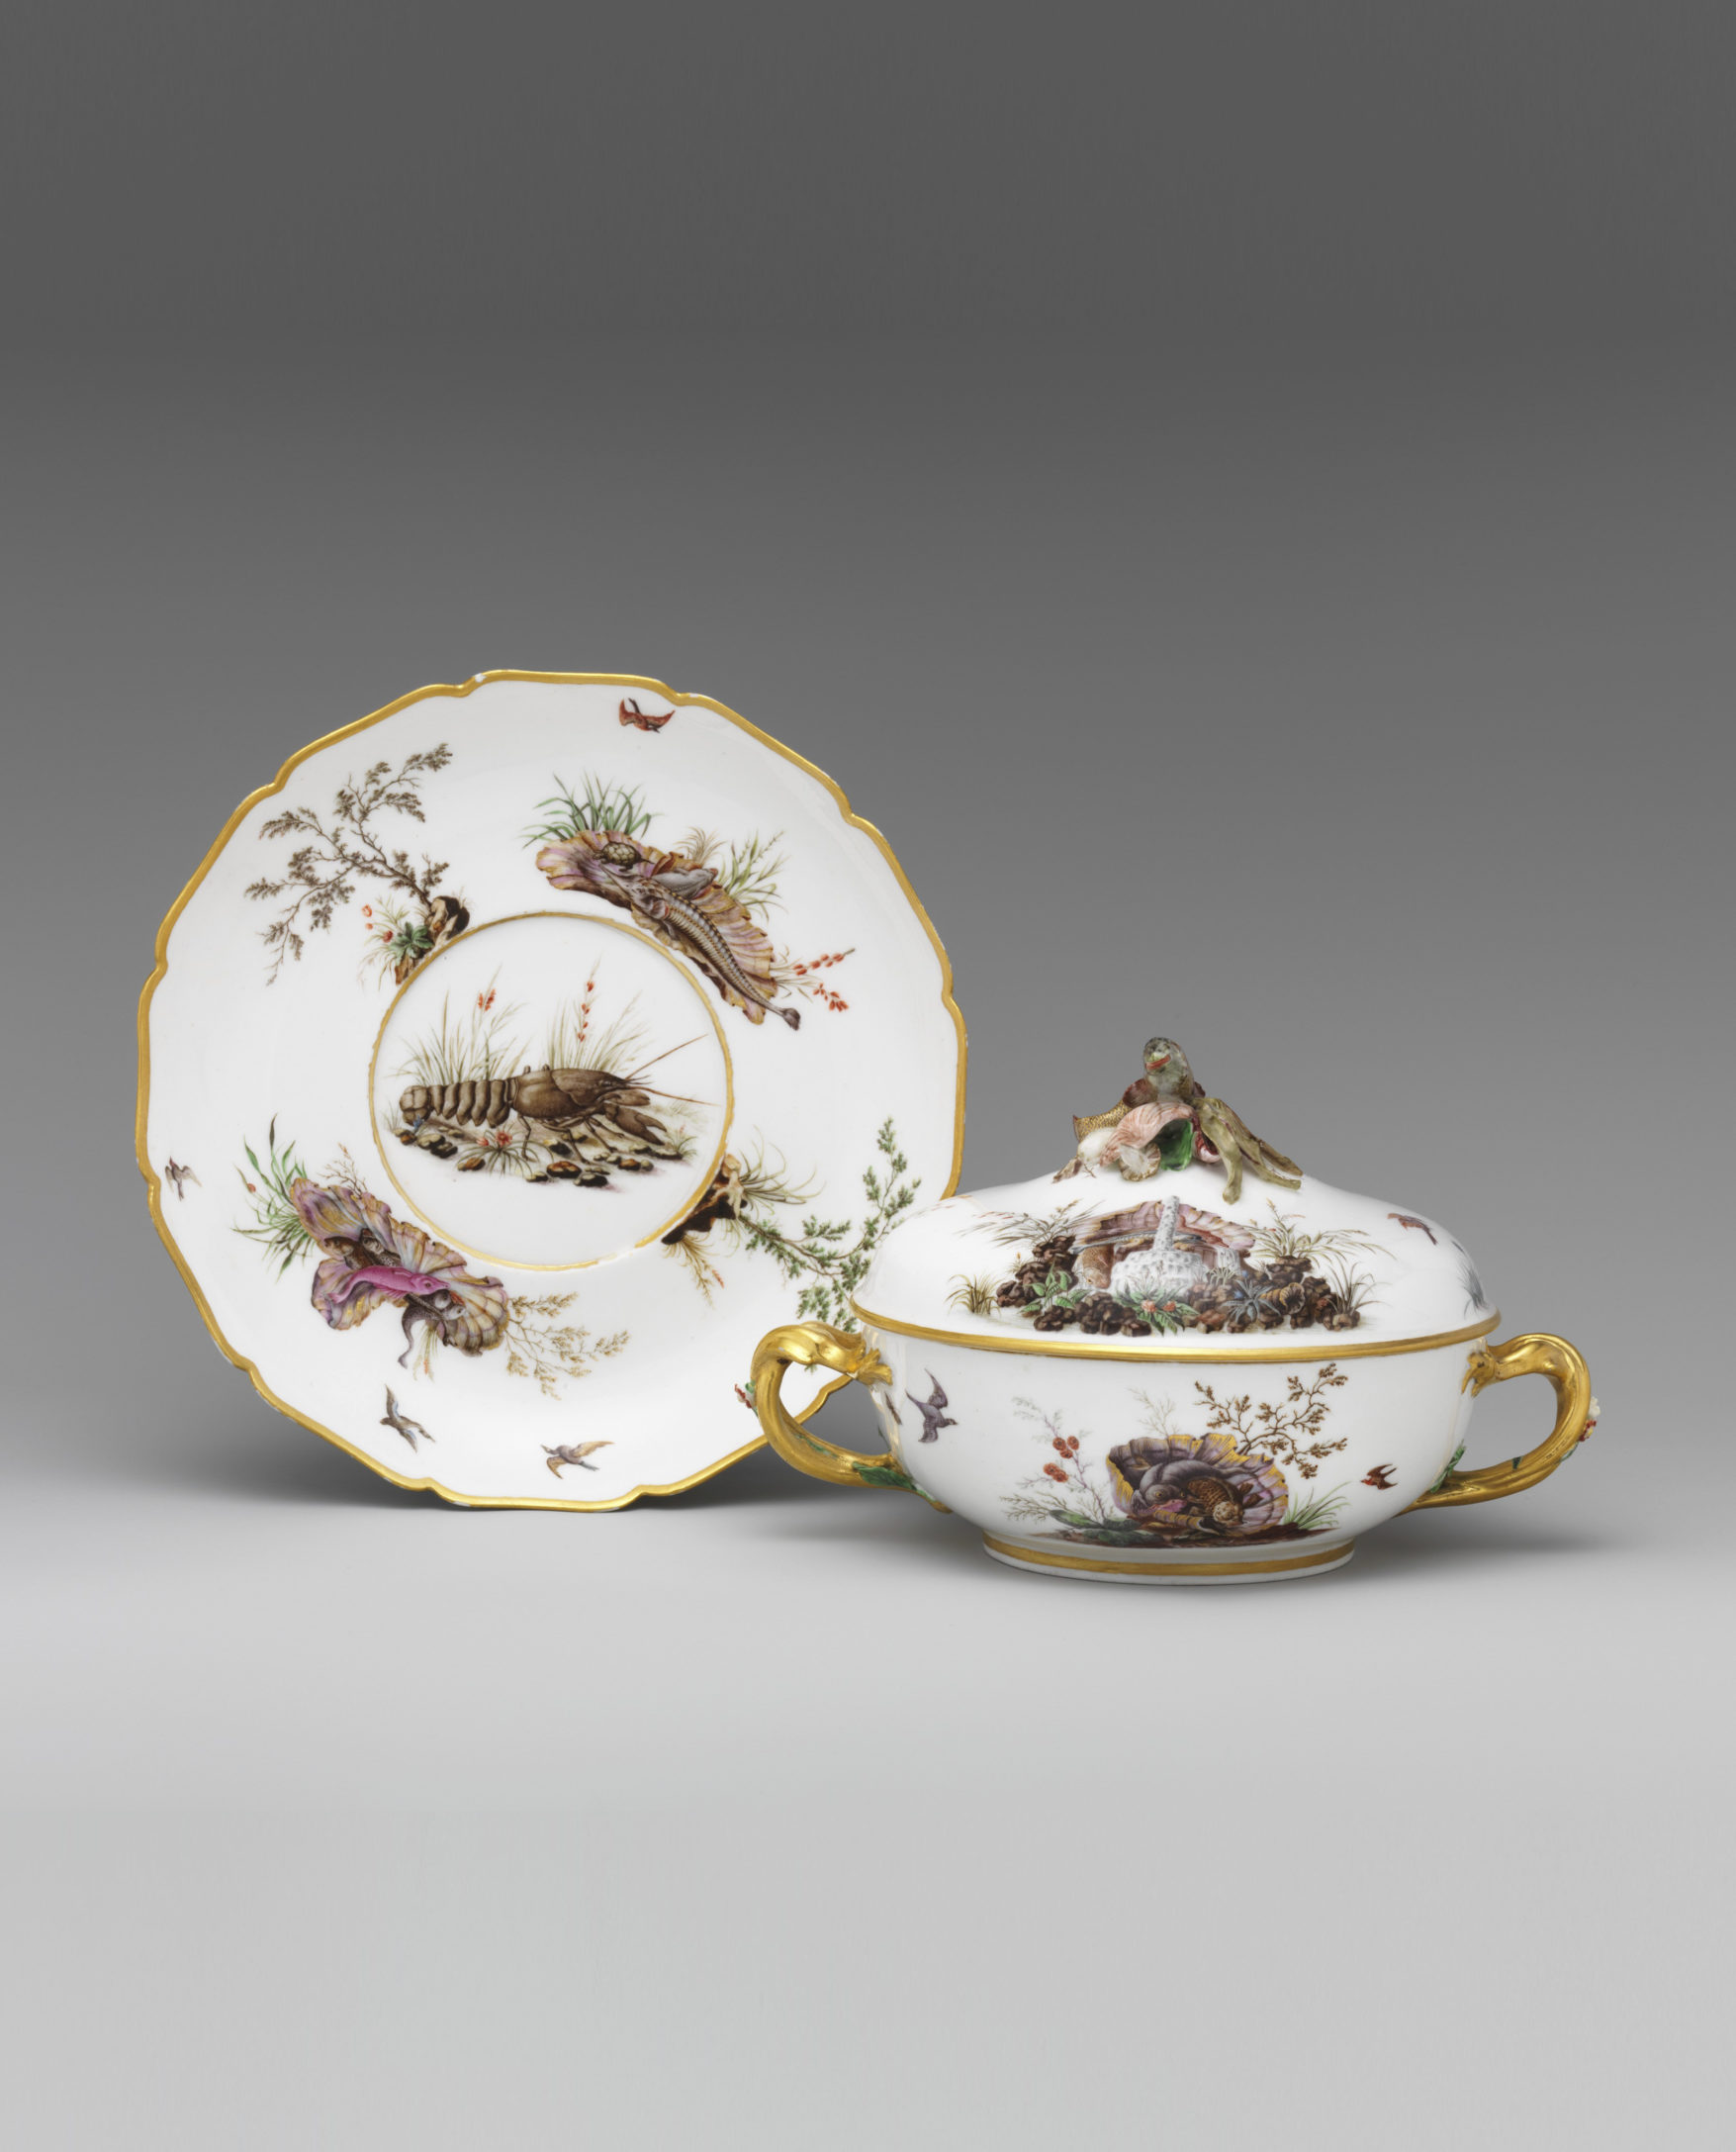 Broth bowl and stand (écuelle ronde et plateau rond), c. 1752-3. (Metropolitan Museum of Art, New York, Inv. no. 50.211.168a, b, .169)